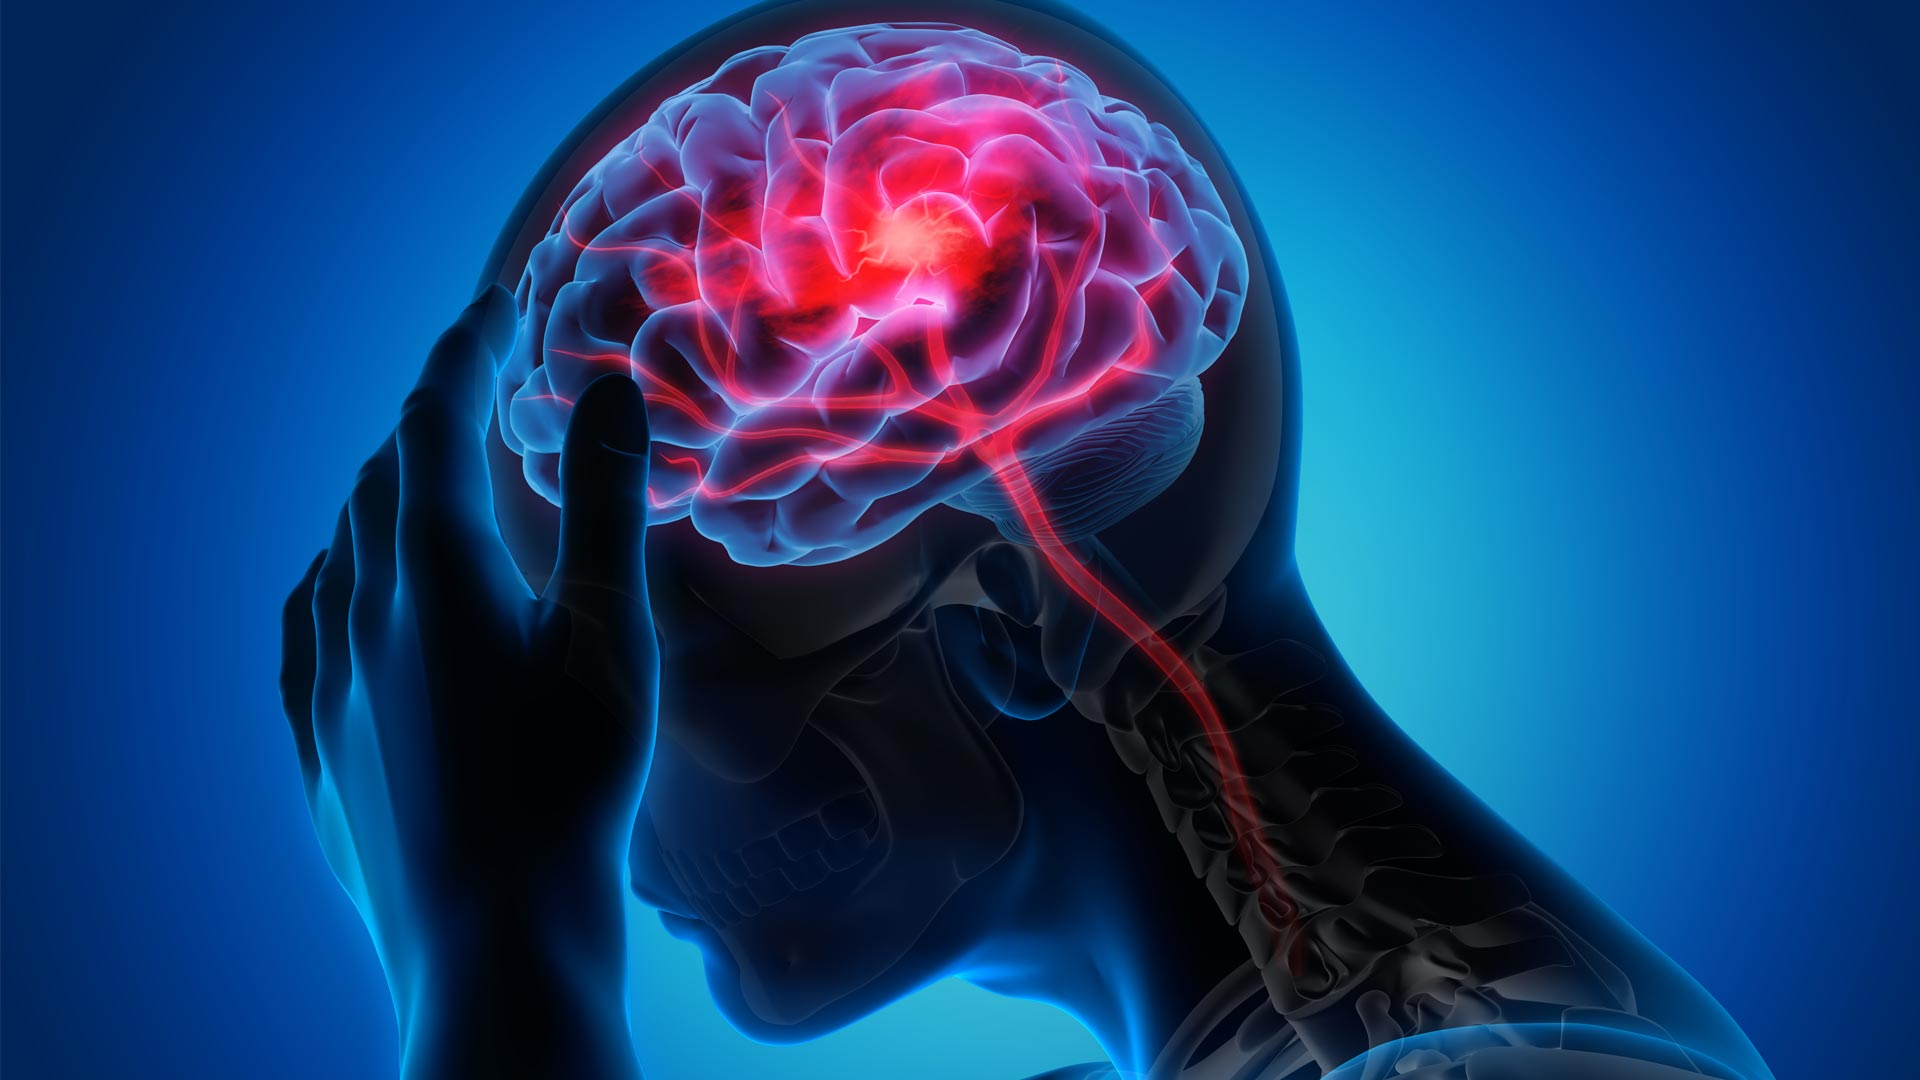 Stroke and Altered Mental State Increase Risk of Death for COVID-19 Patients